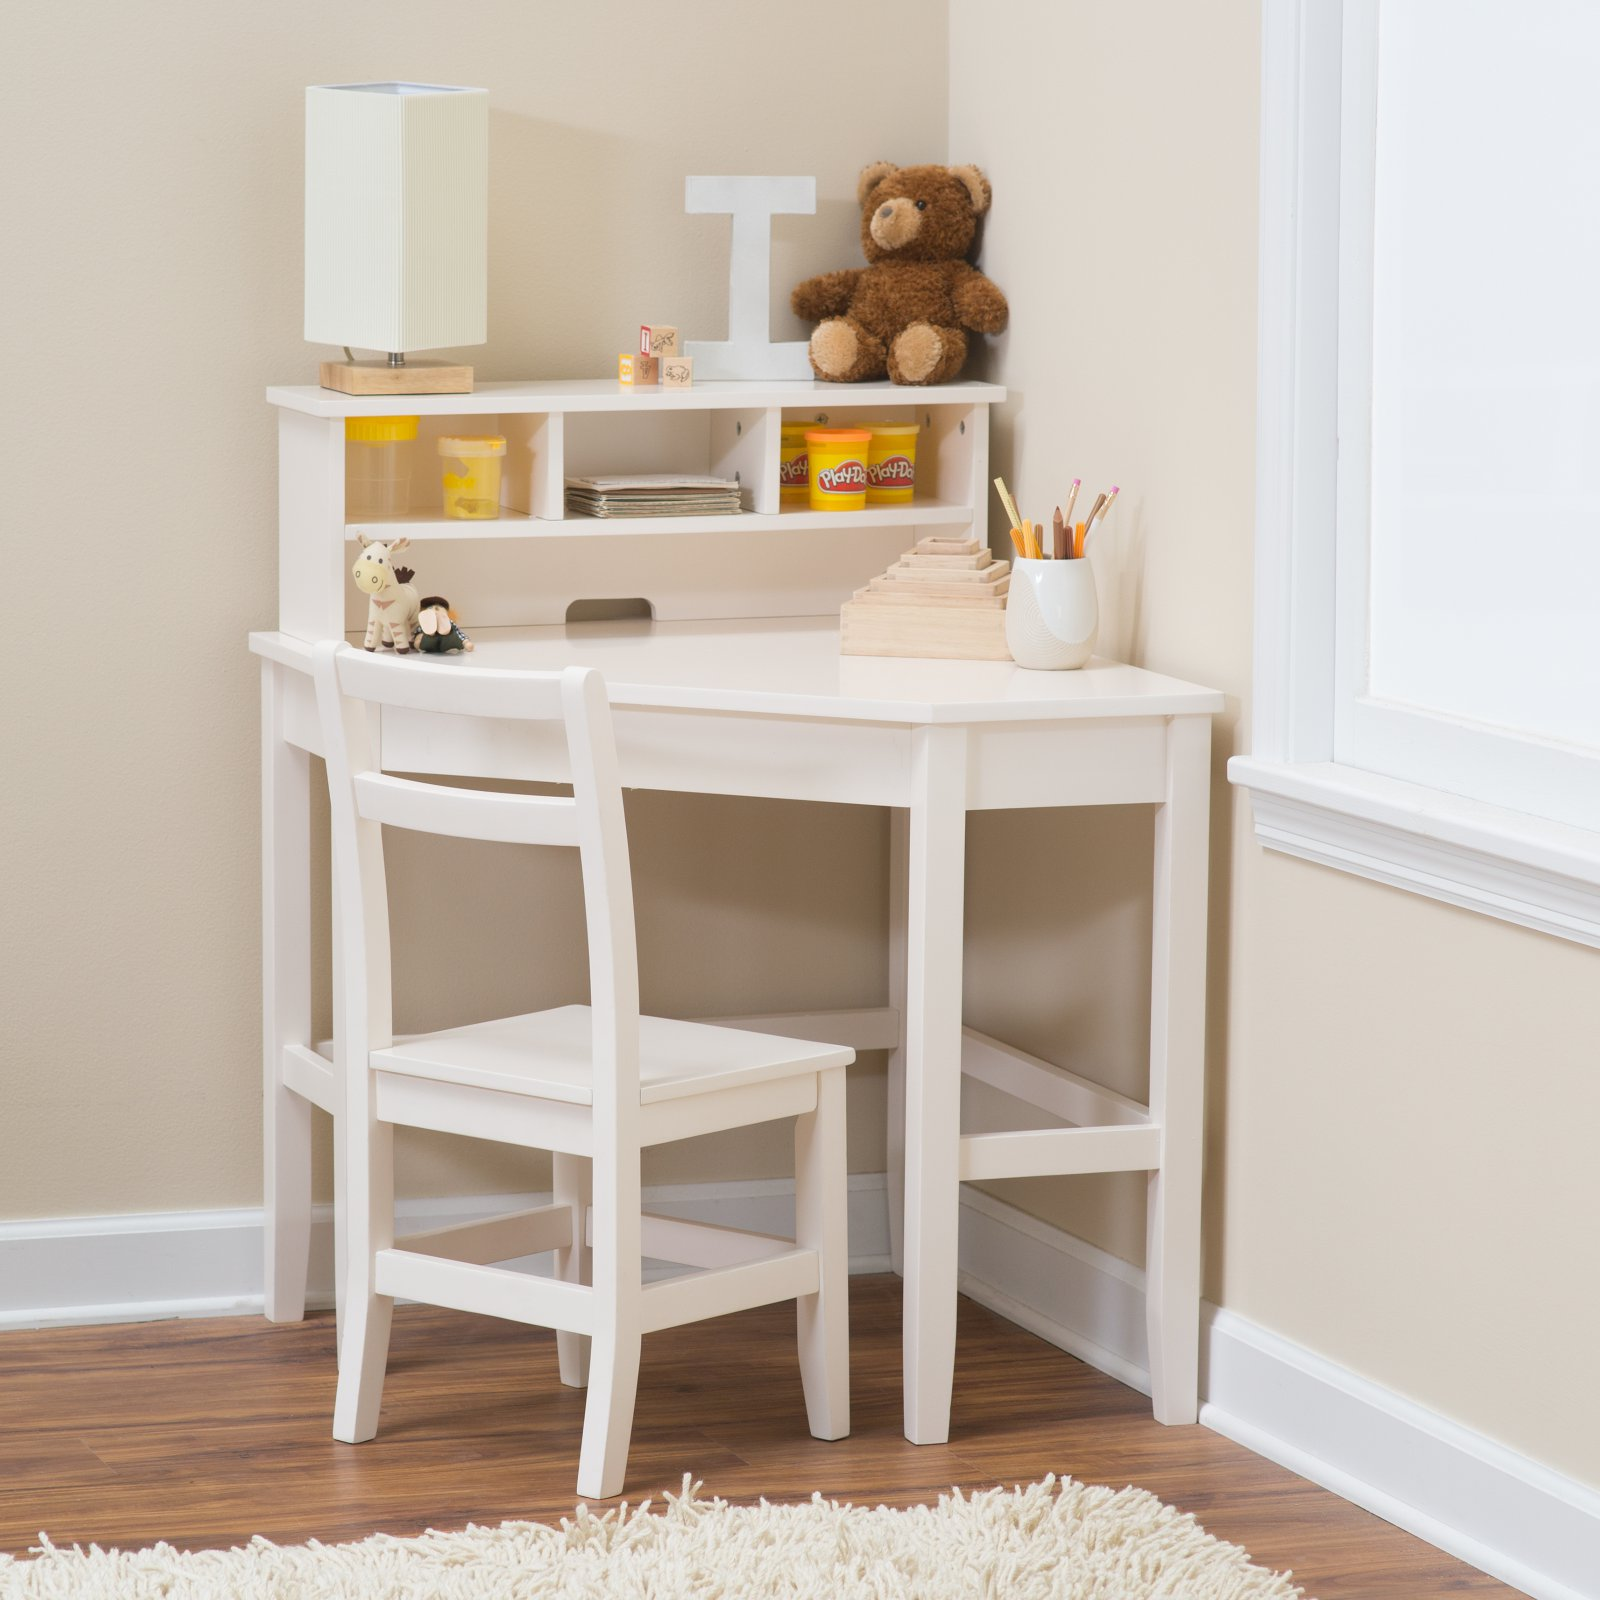 Classic Playtime Juvenile Corner Desk and Reversible Hutch with Chair - Vanilla